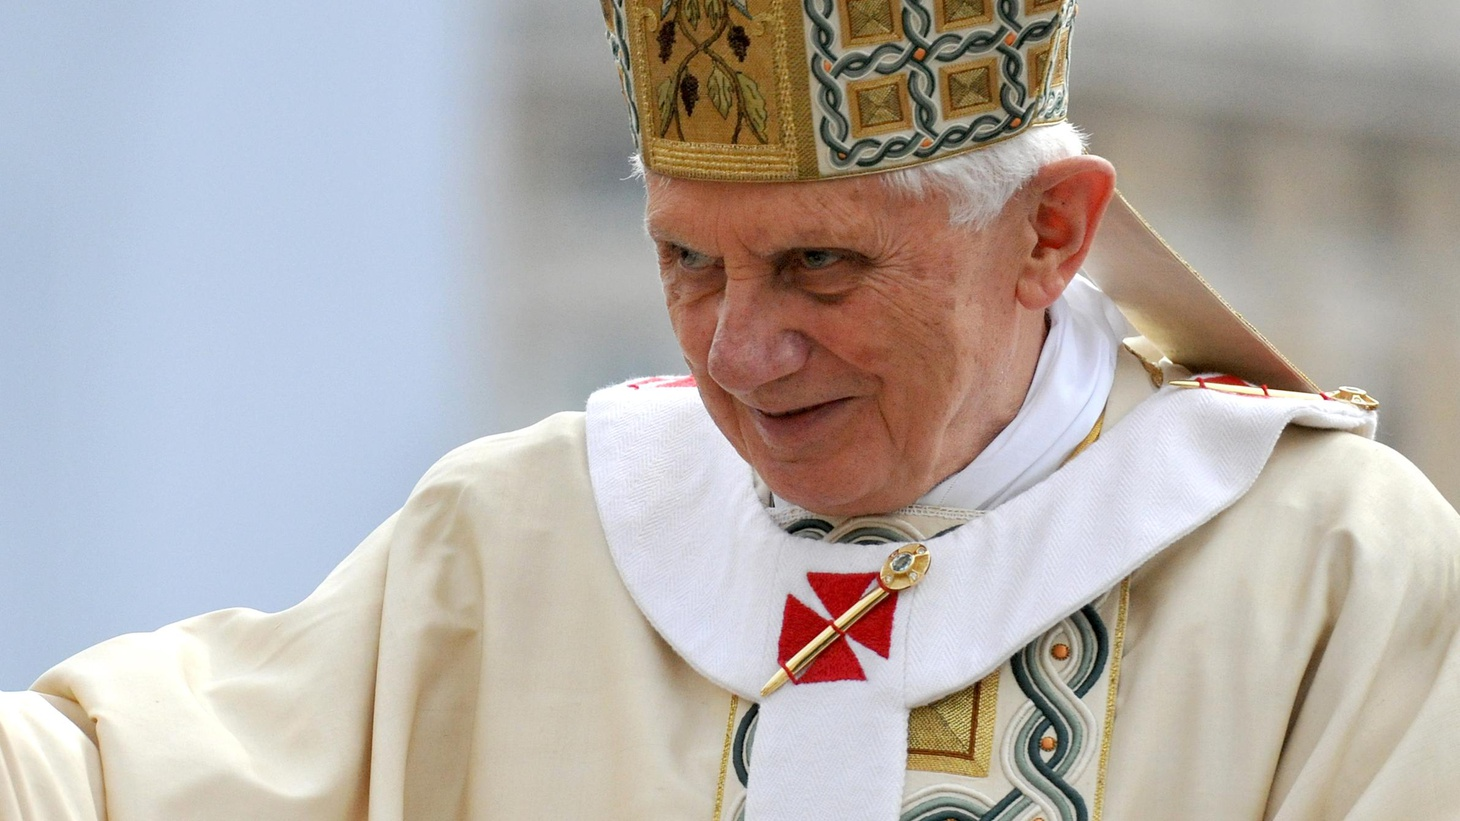 For the first time since 1415, a Roman Catholic Pope is resigning. We hear about the reign of Benedict XVI and the prospects for his successor.